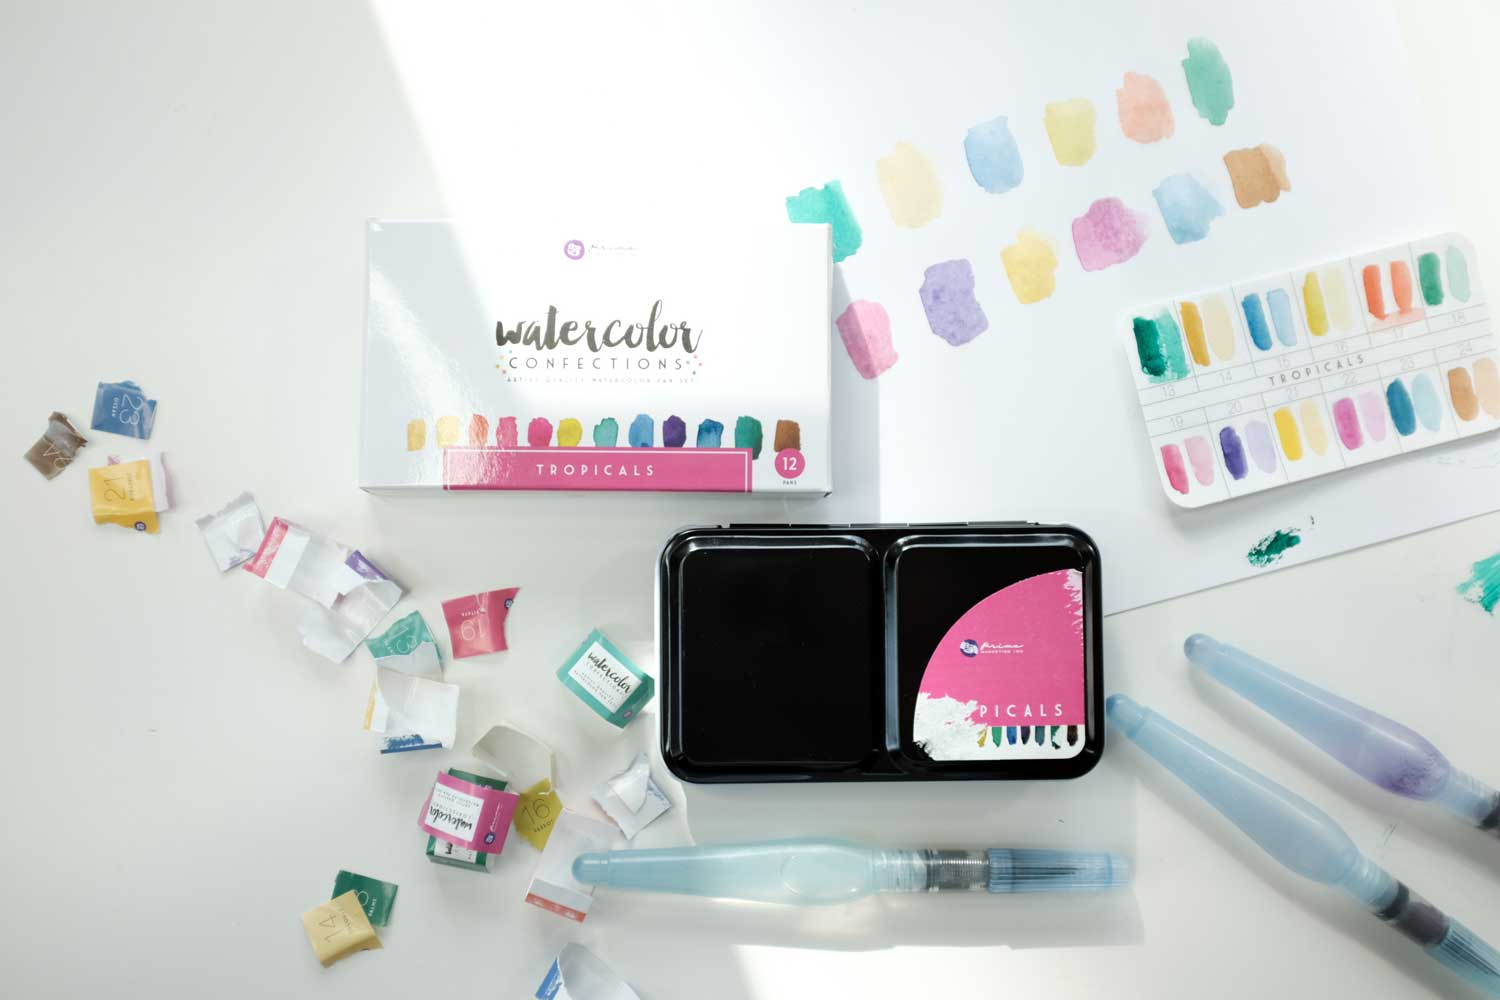 Prima Marketing Tropical Watercolor Confections 12 pan set unboxing video